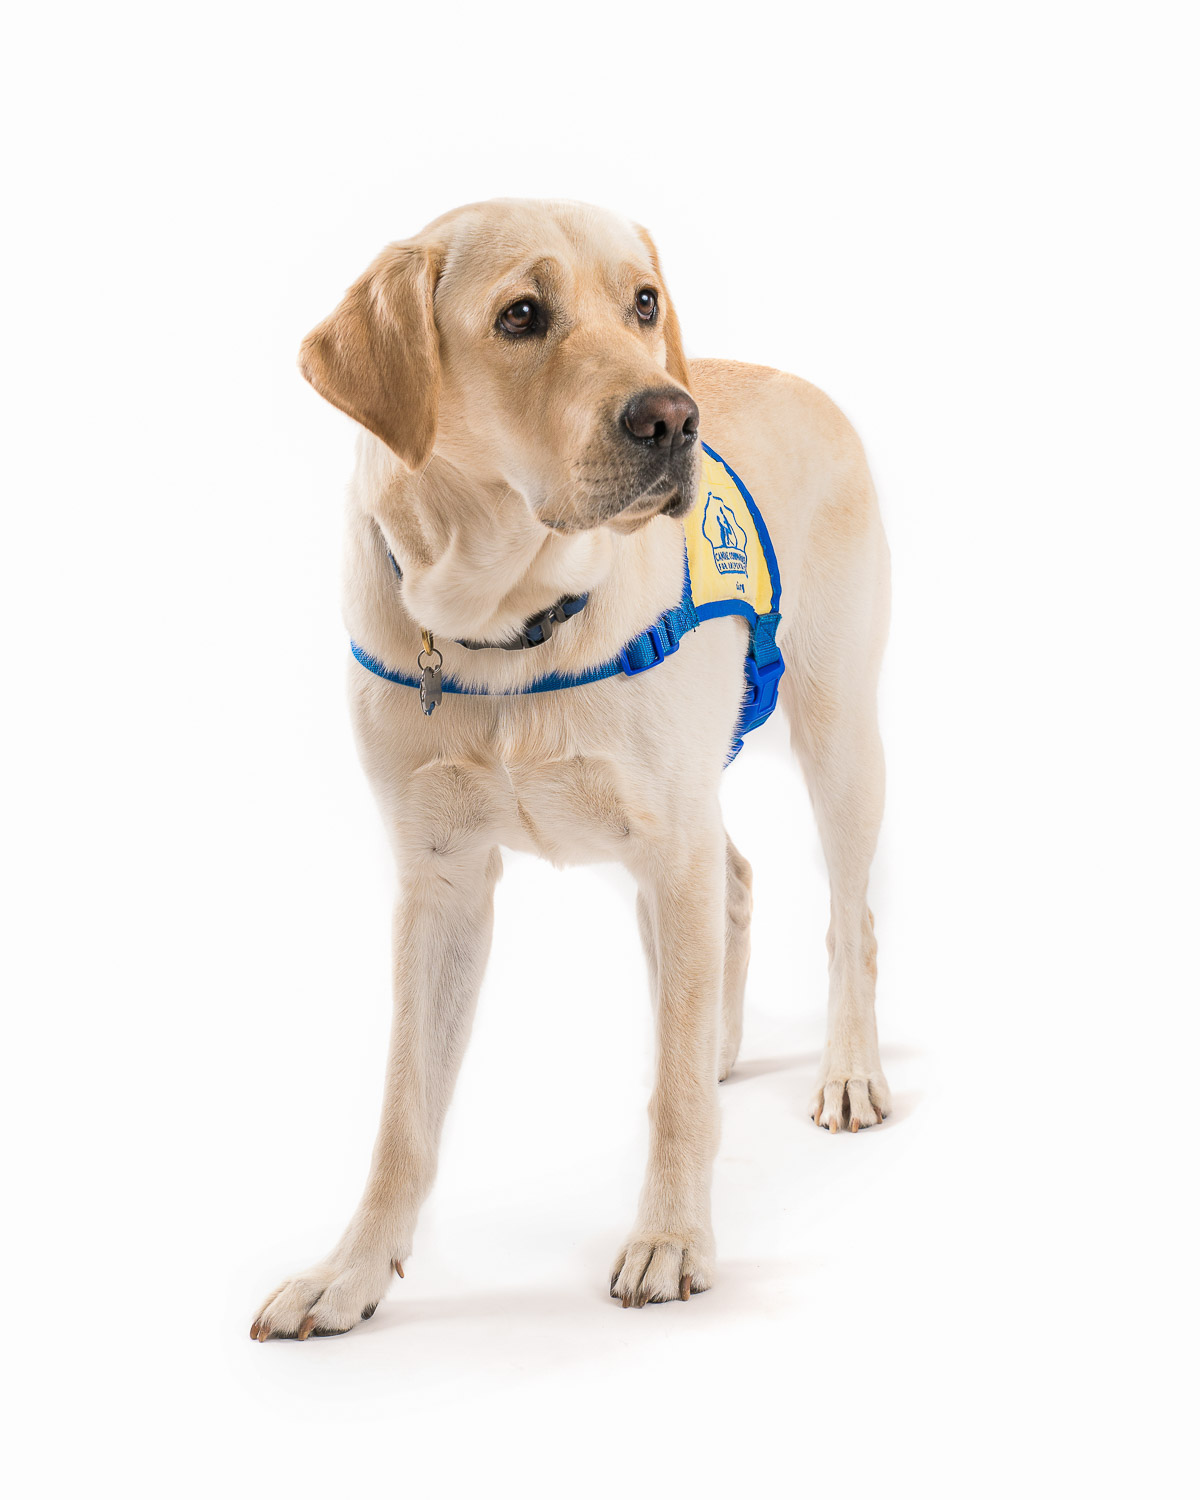 CCI Canine Companions for Independence - 009.jpg